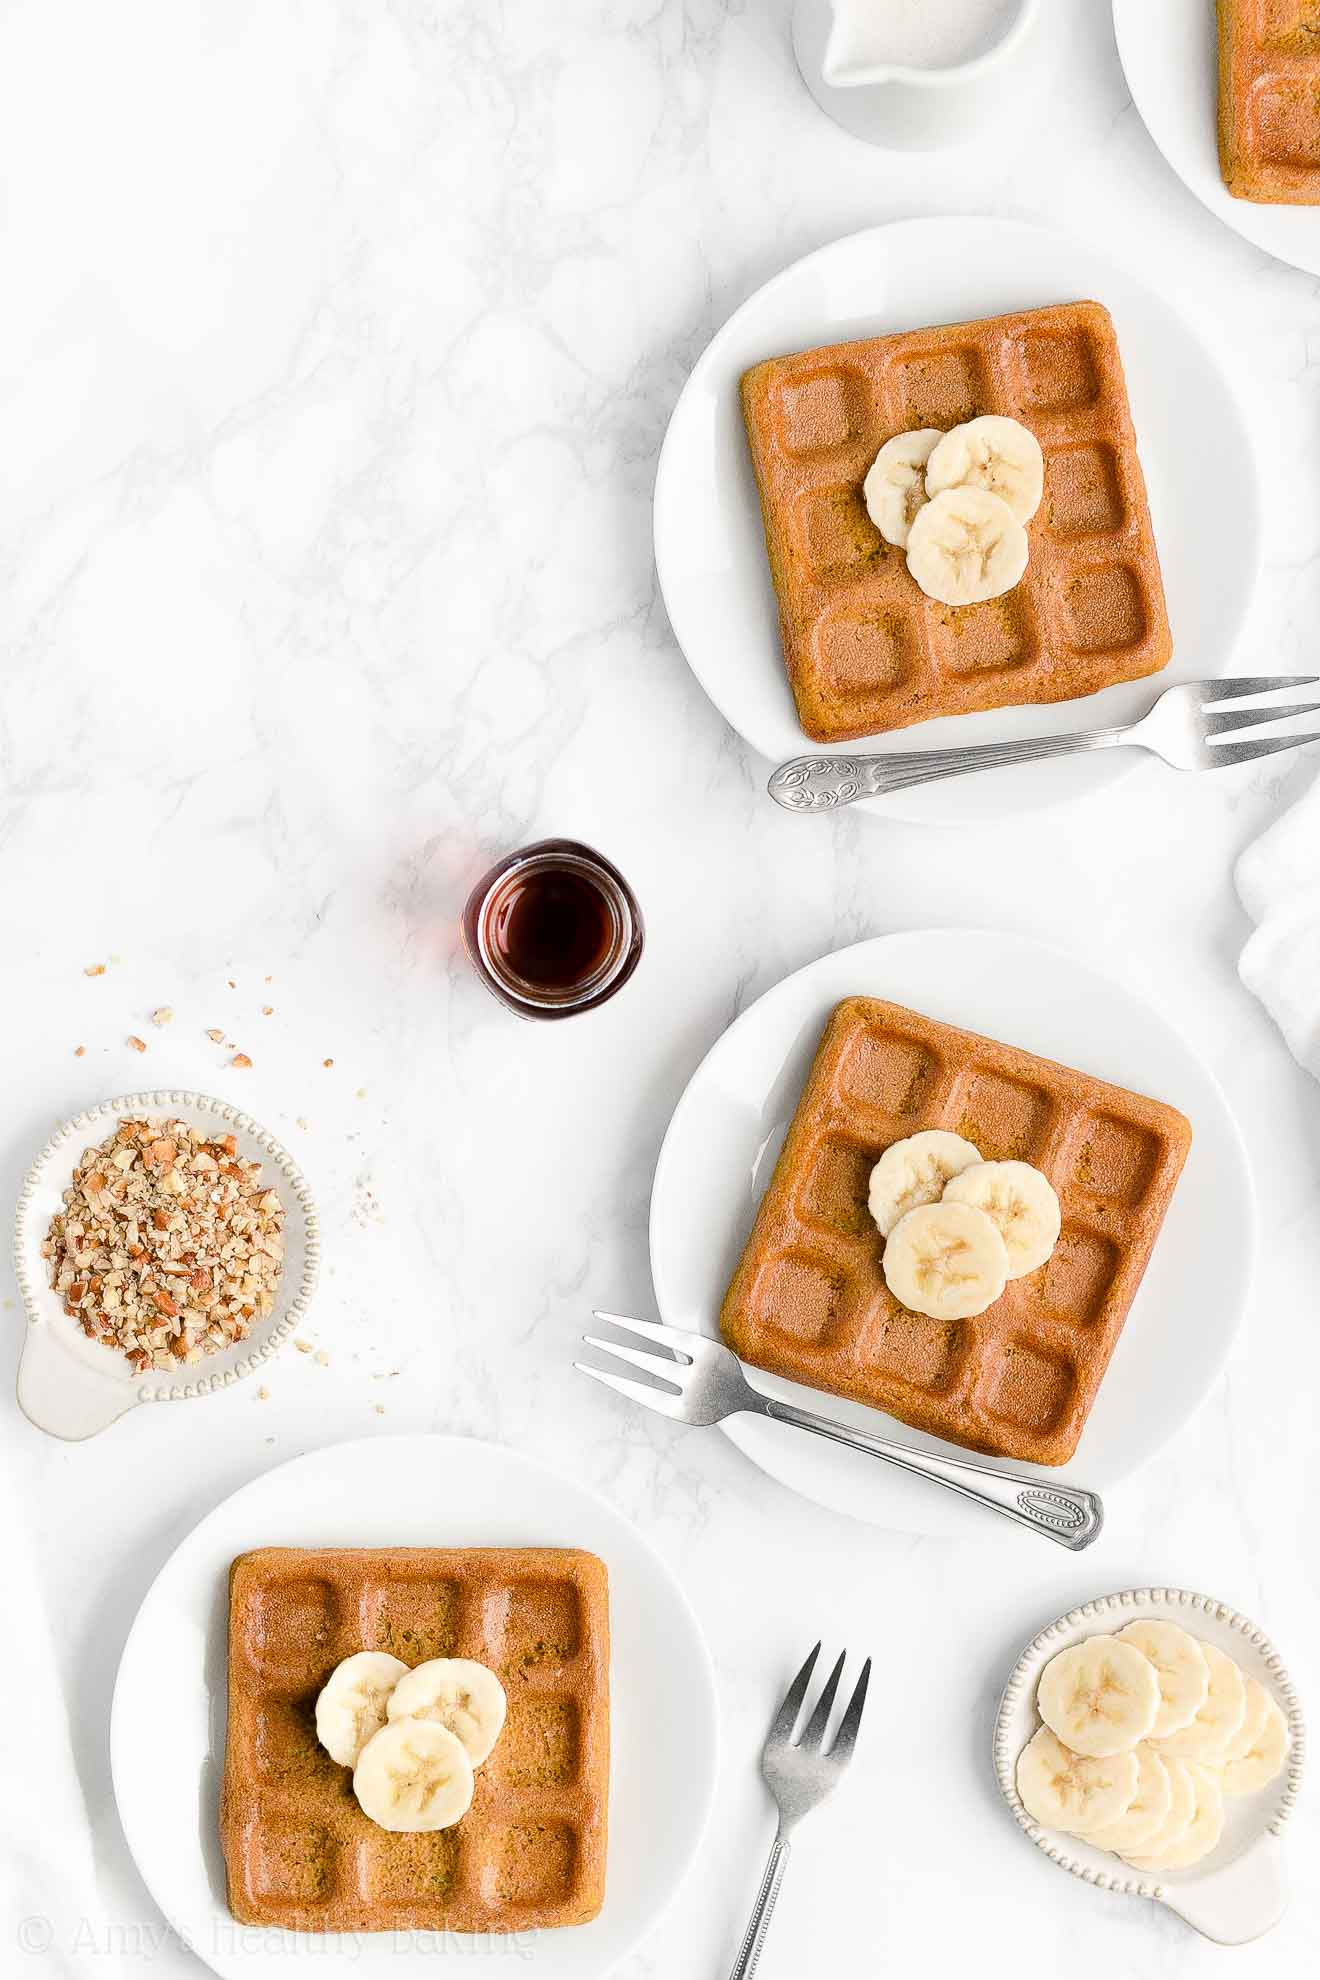 Best Easy Healthy Vegan Gluten Free Sugar Free No Eggs Crispy Banana Waffles